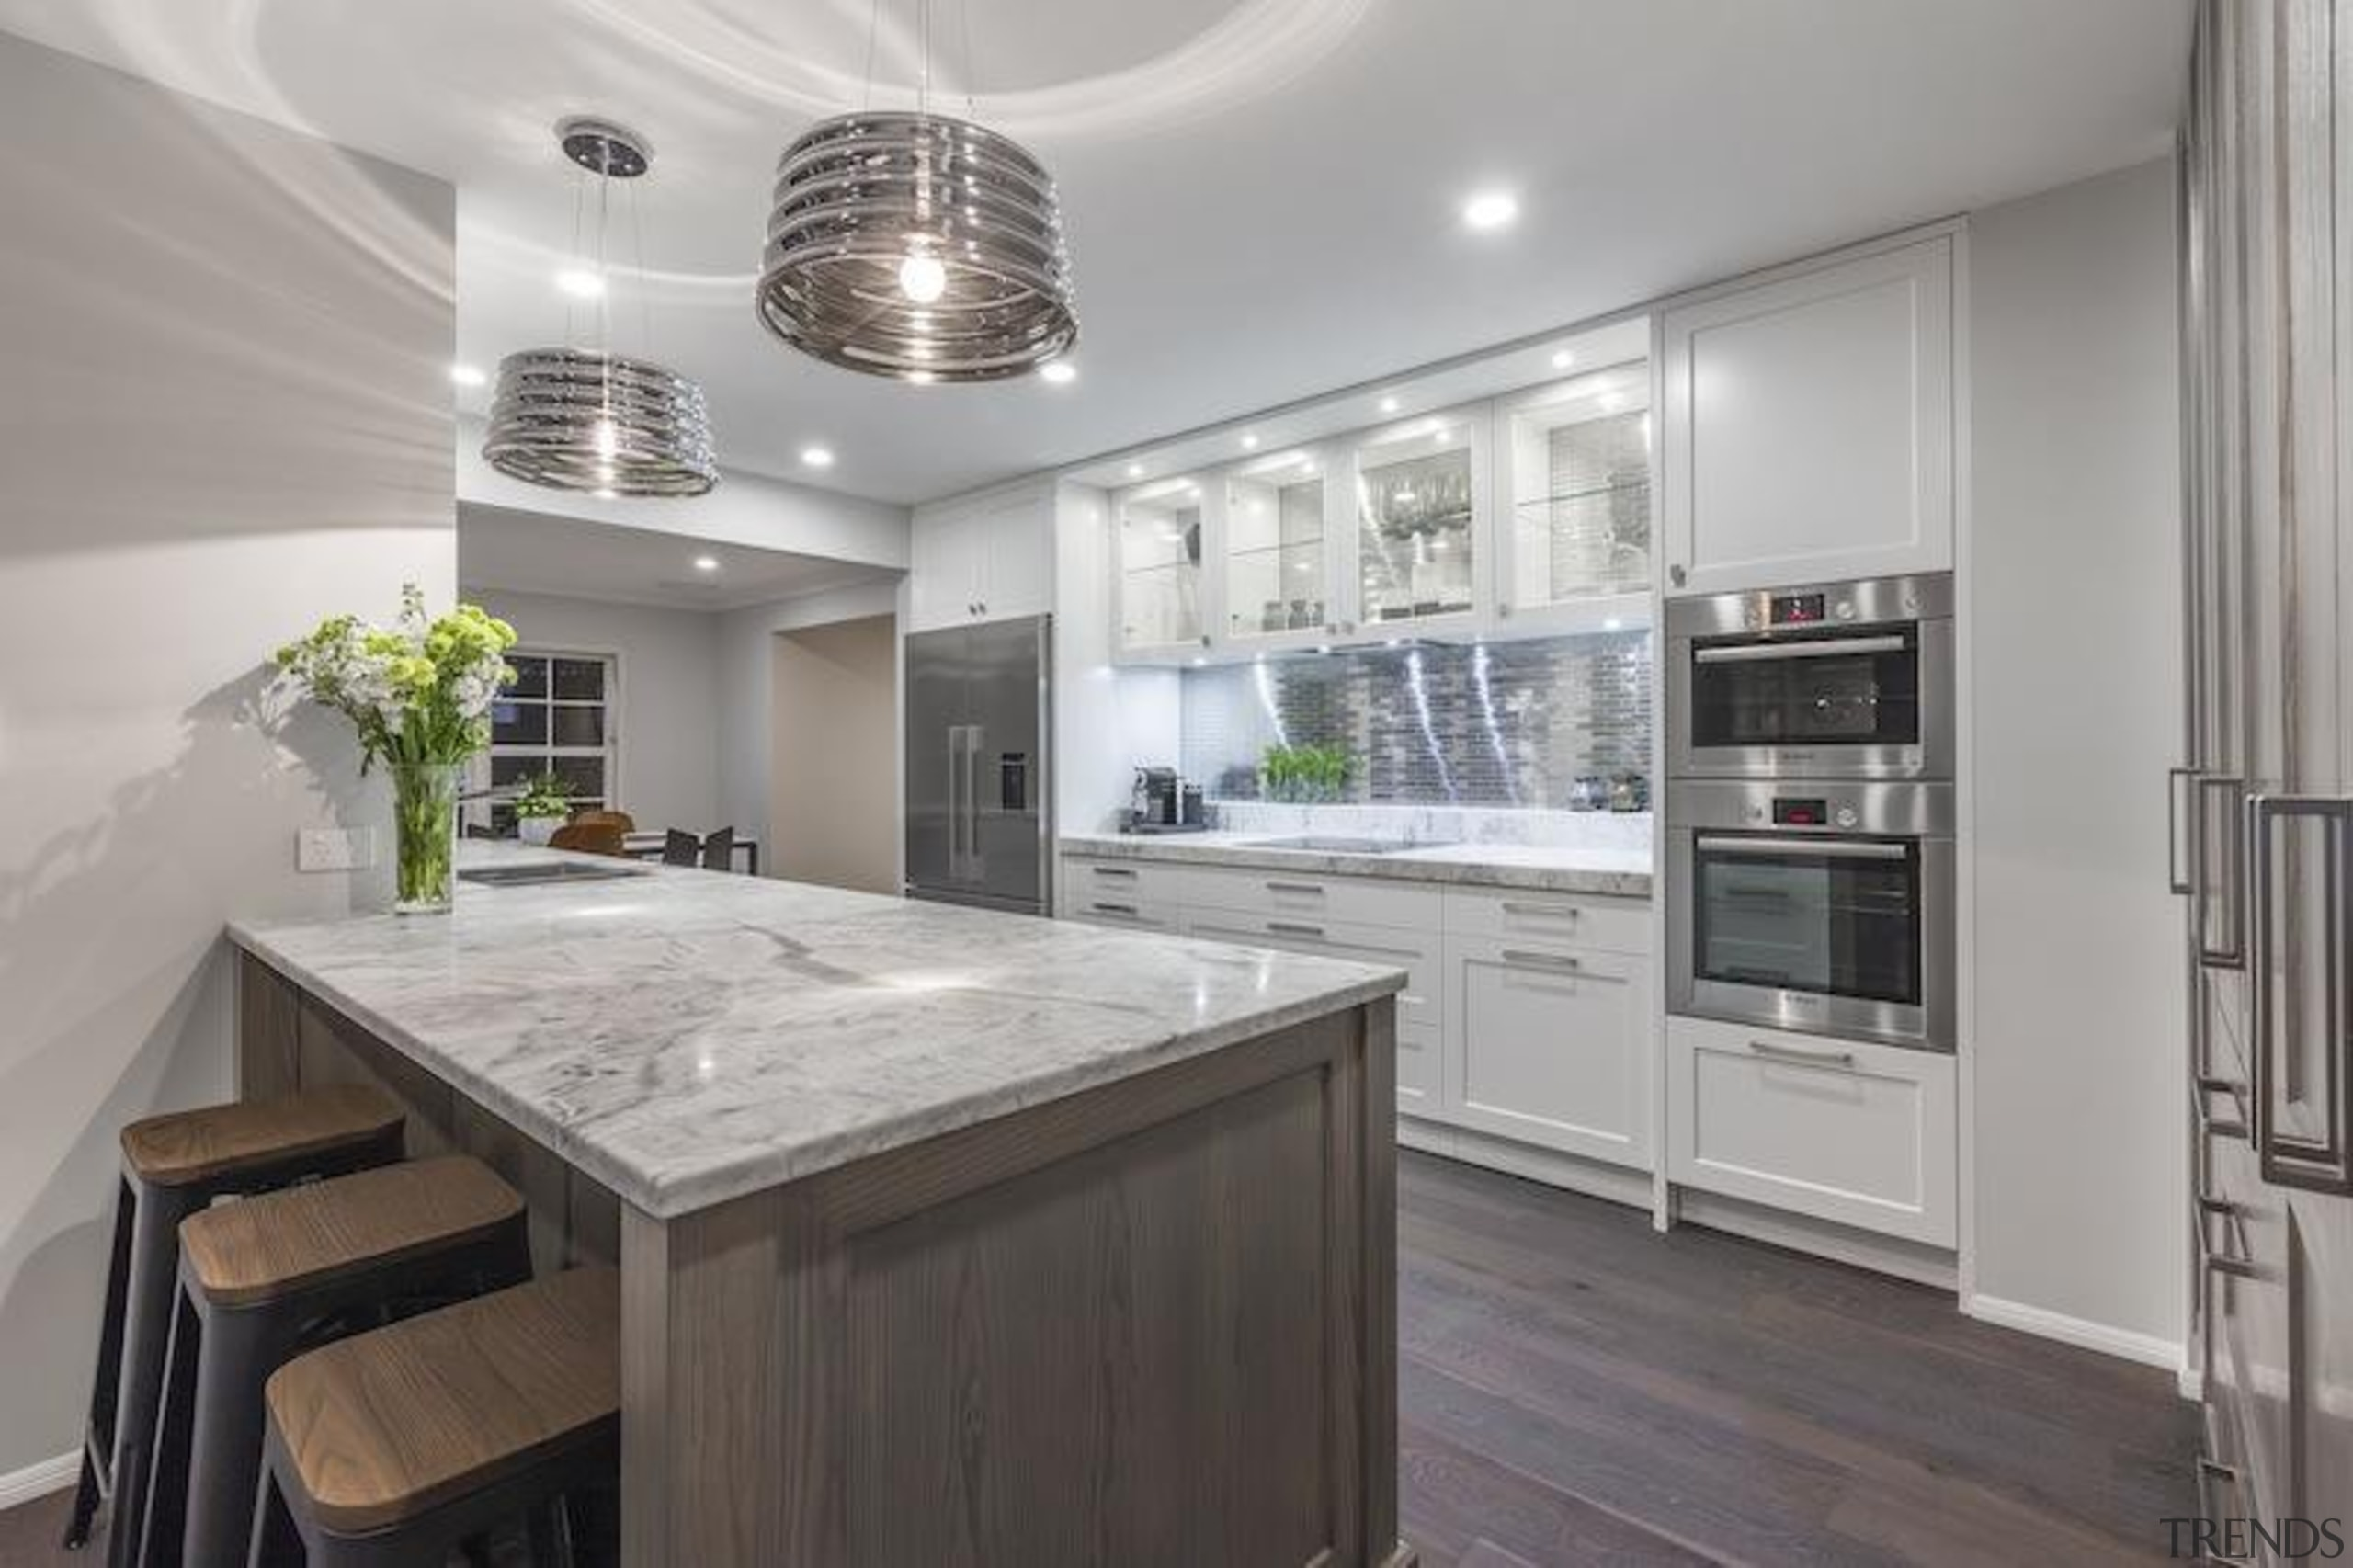 Proudly brought to you by Kitchen Things - cabinetry, countertop, cuisine classique, home appliance, interior design, kitchen, real estate, gray